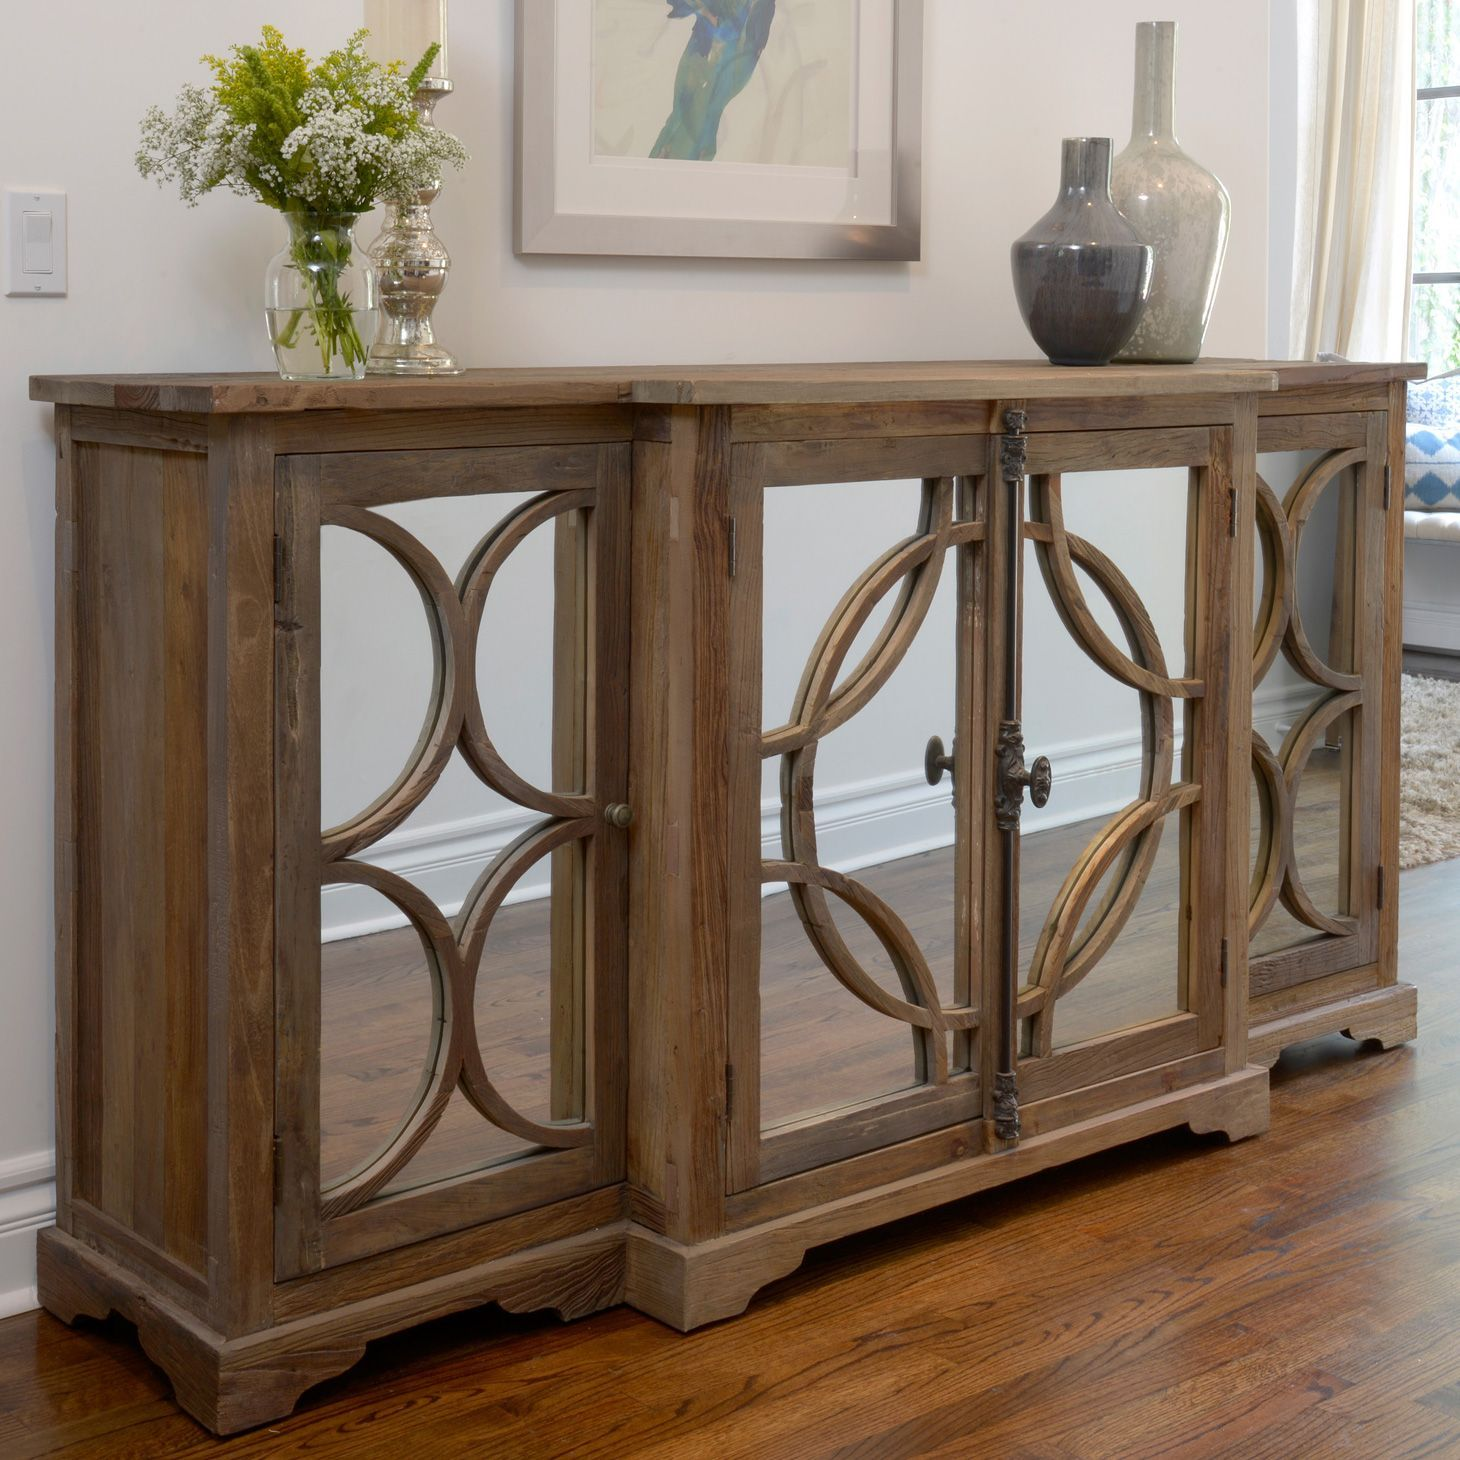 add this wood sideboard to your home for added style and function the mirrors